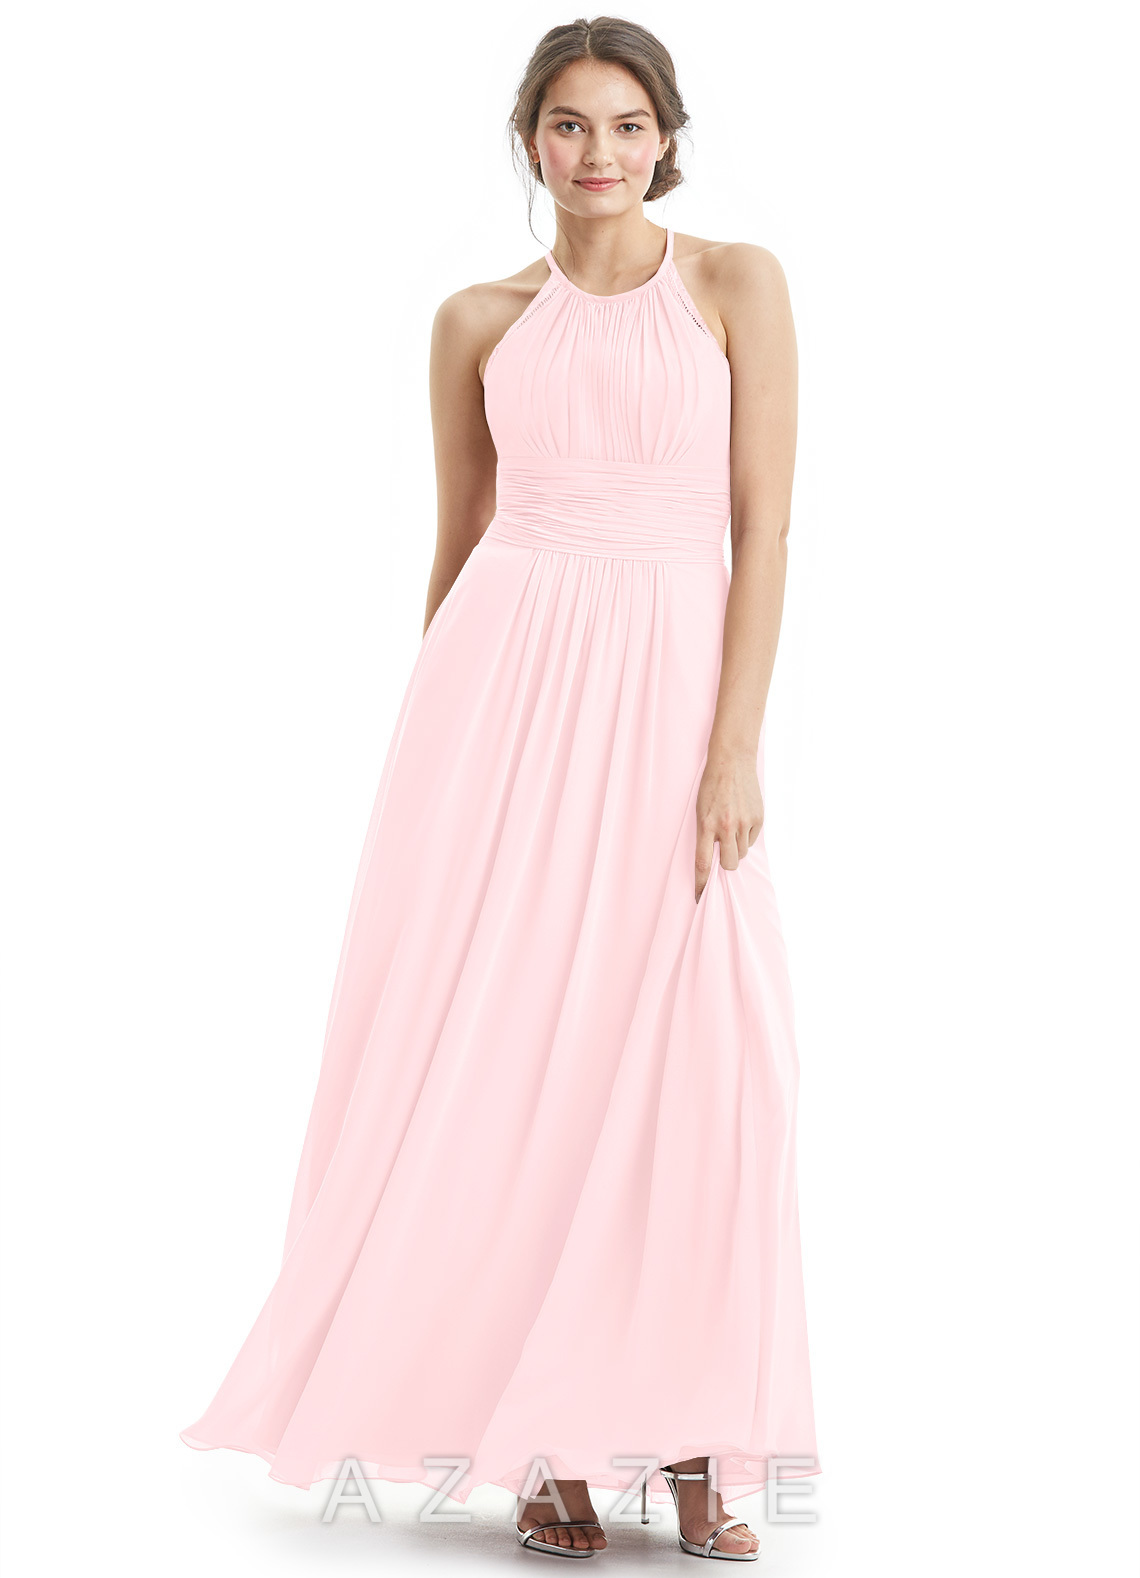 a71155300d1d Azazie Regina Bridesmaid Dress - Blushing Pink | Azazie